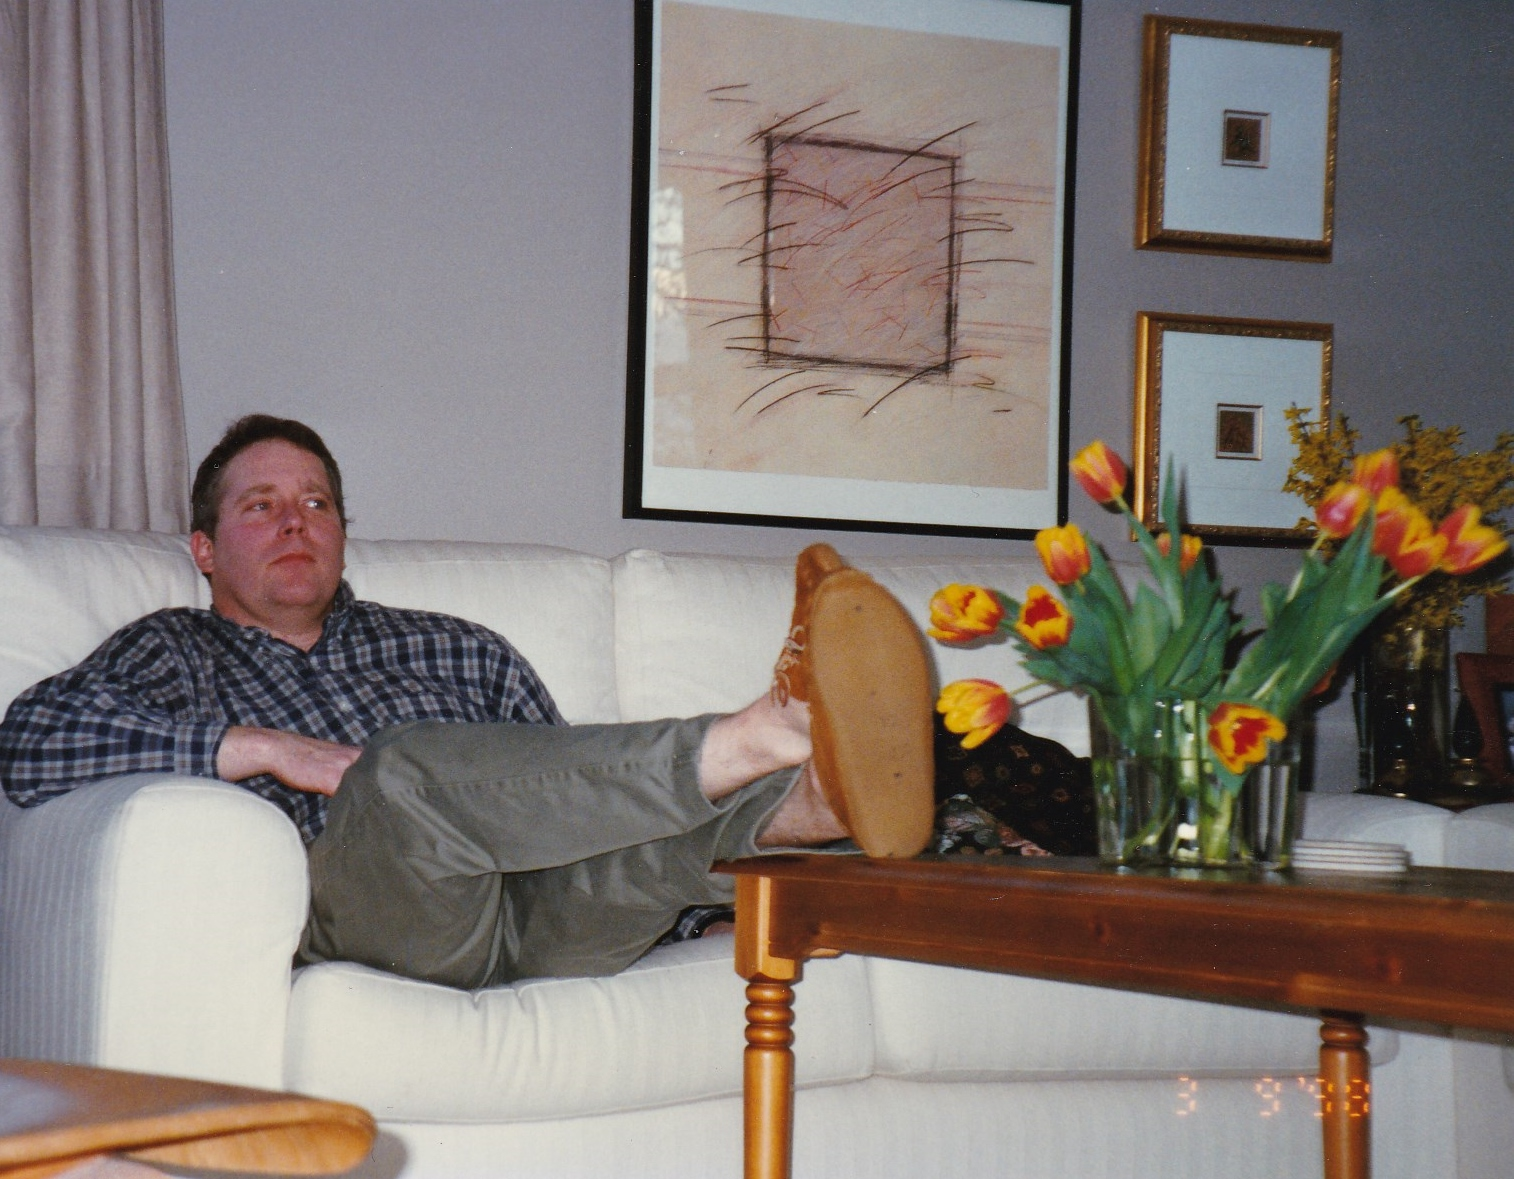 And here's my husband, years ago, with his feet up on it. -1998 :-)